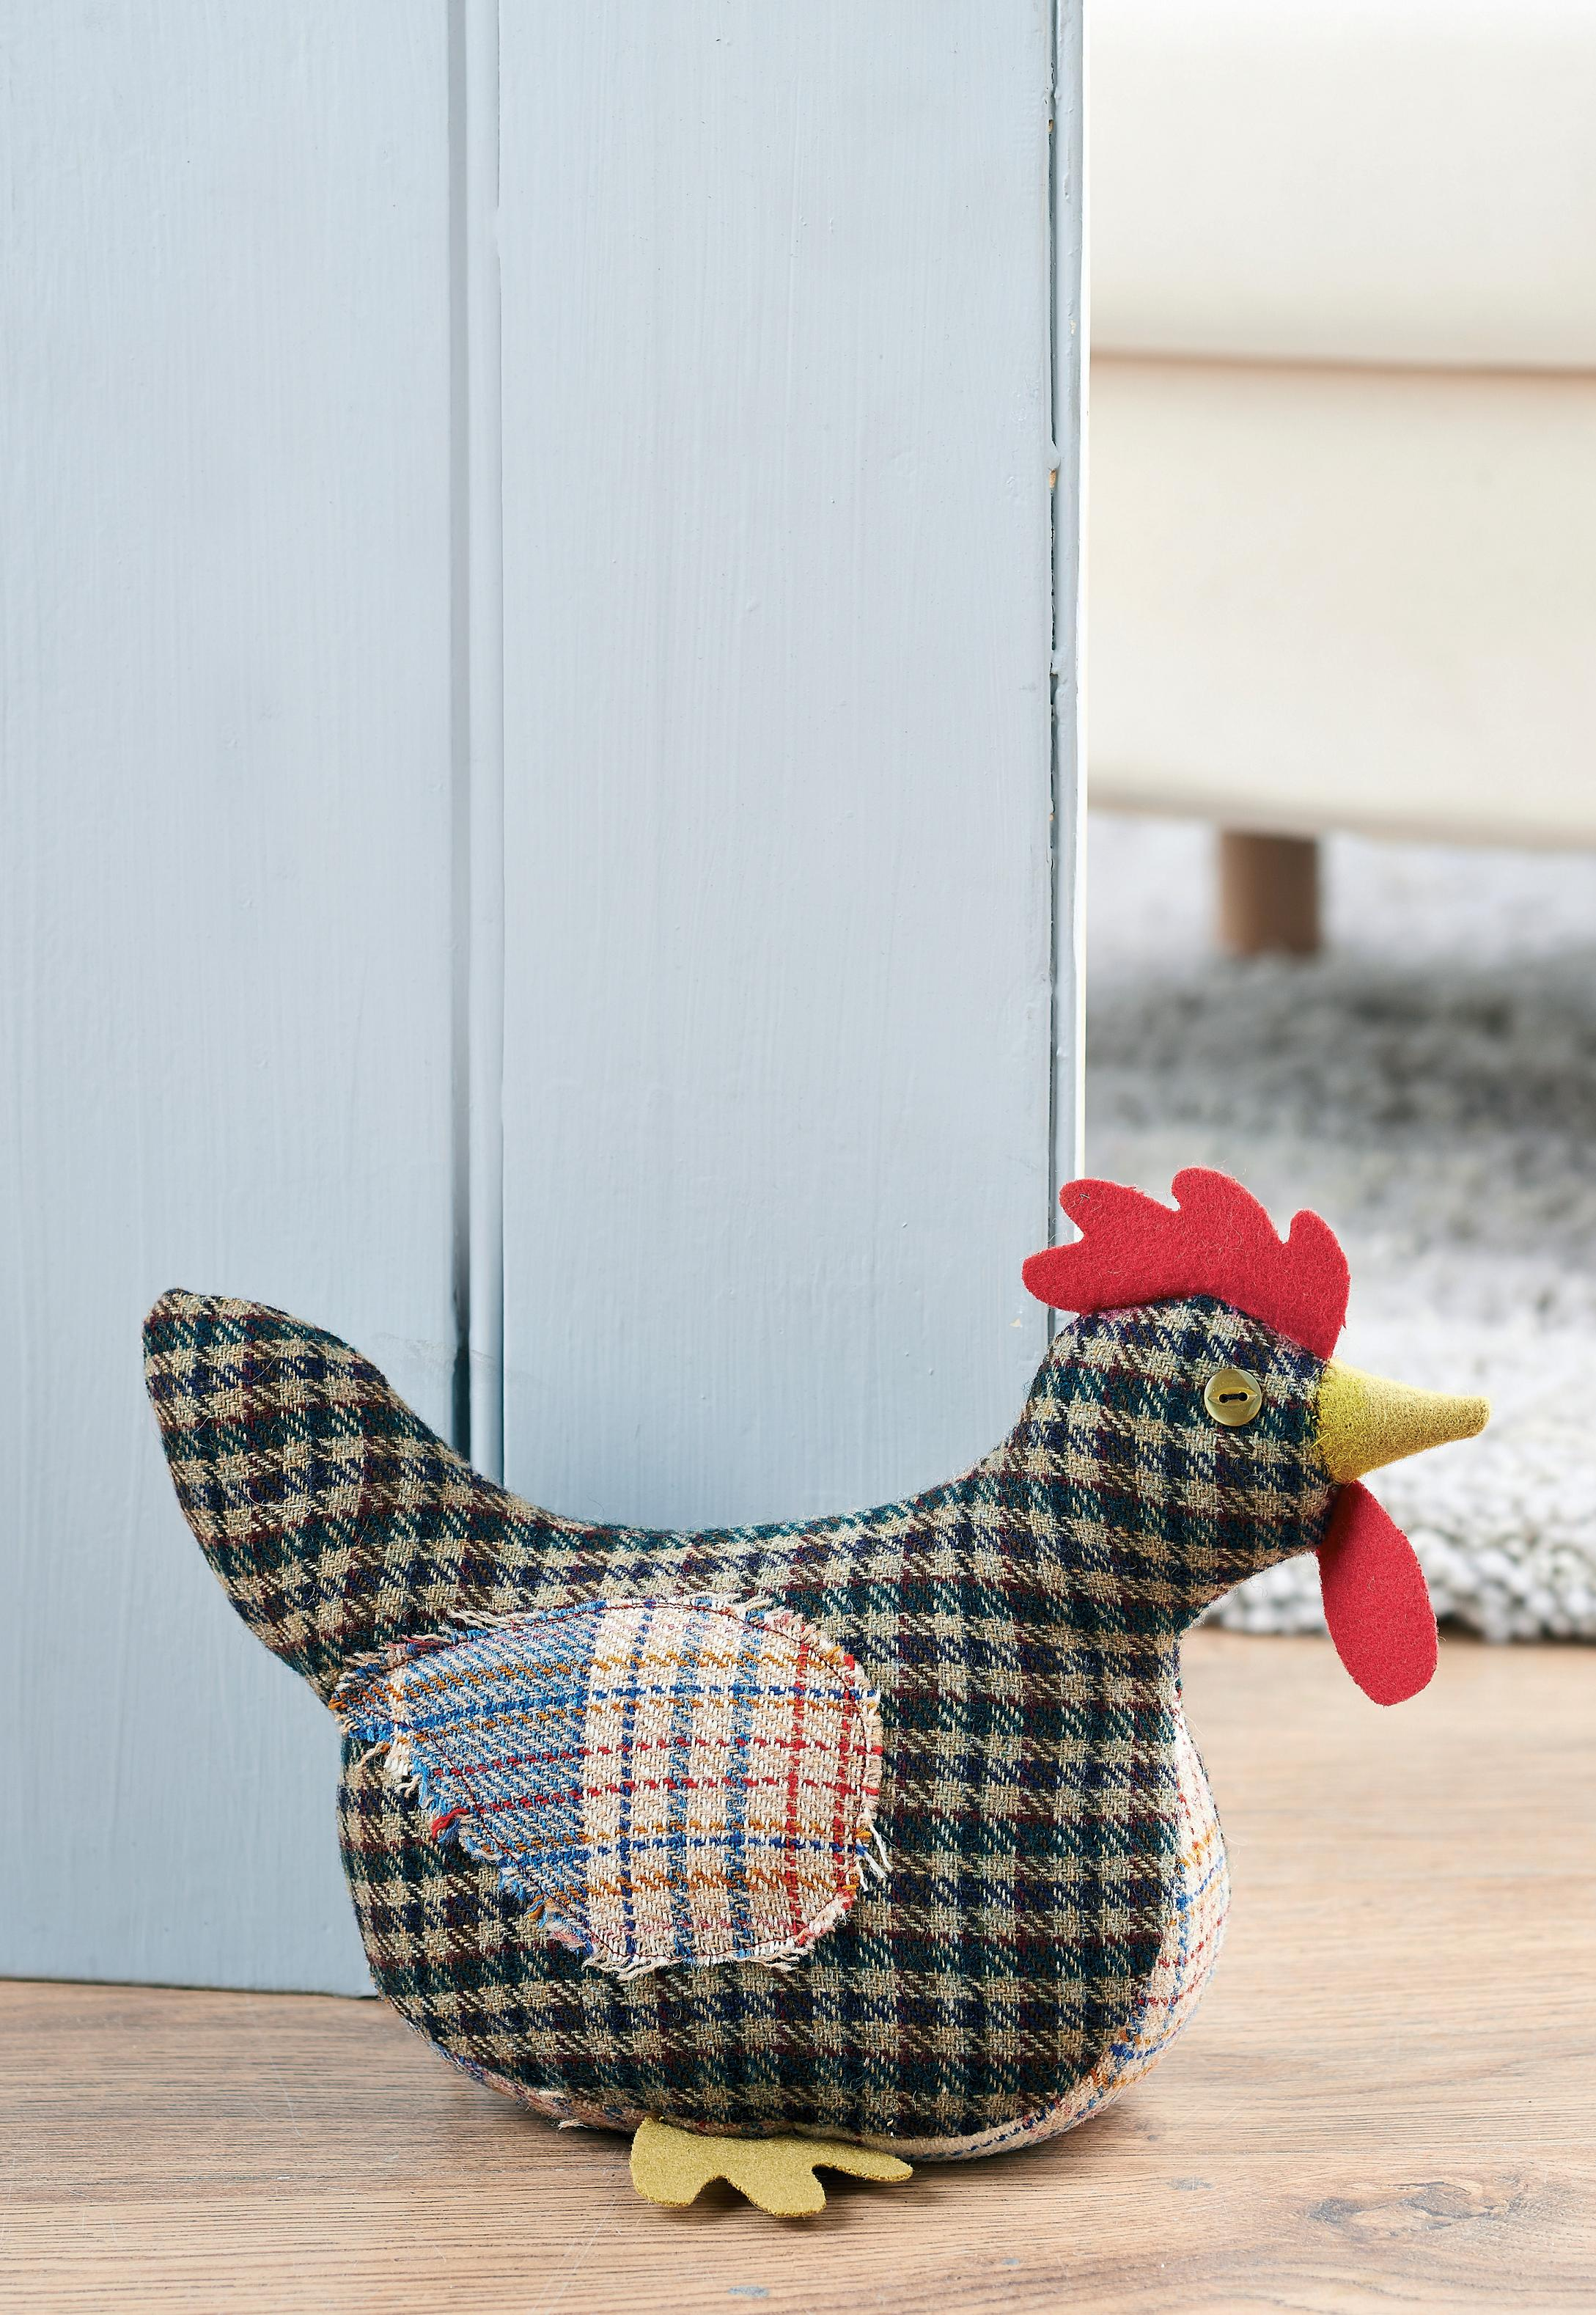 Tweed Chicken Doorstop Free Sewing Patterns Sew Magazine